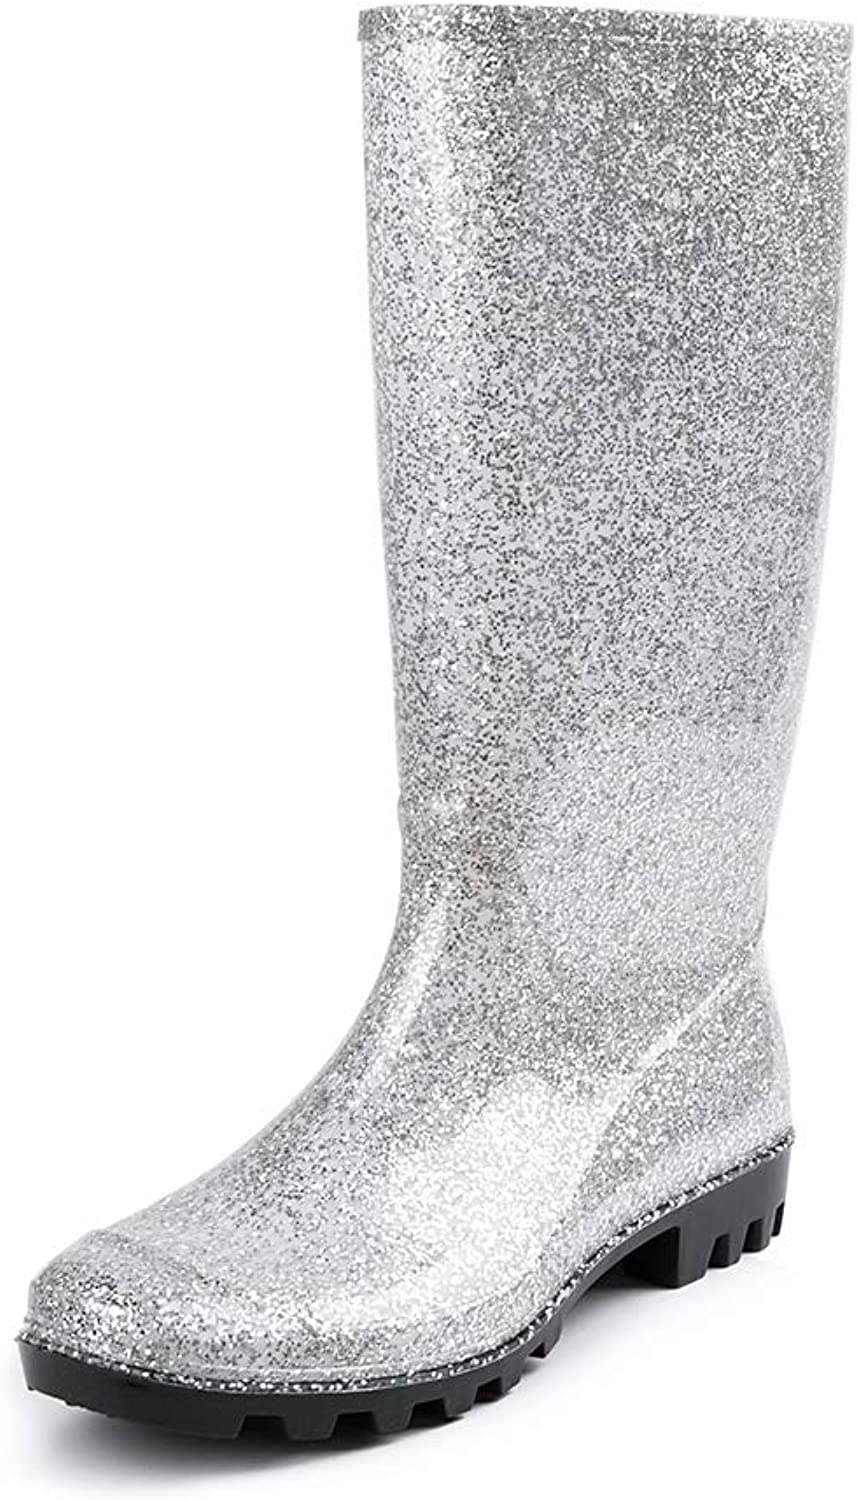 DKSUKO Womens Wellie Rain Boot Original Tall Waterproof Wellington Boots